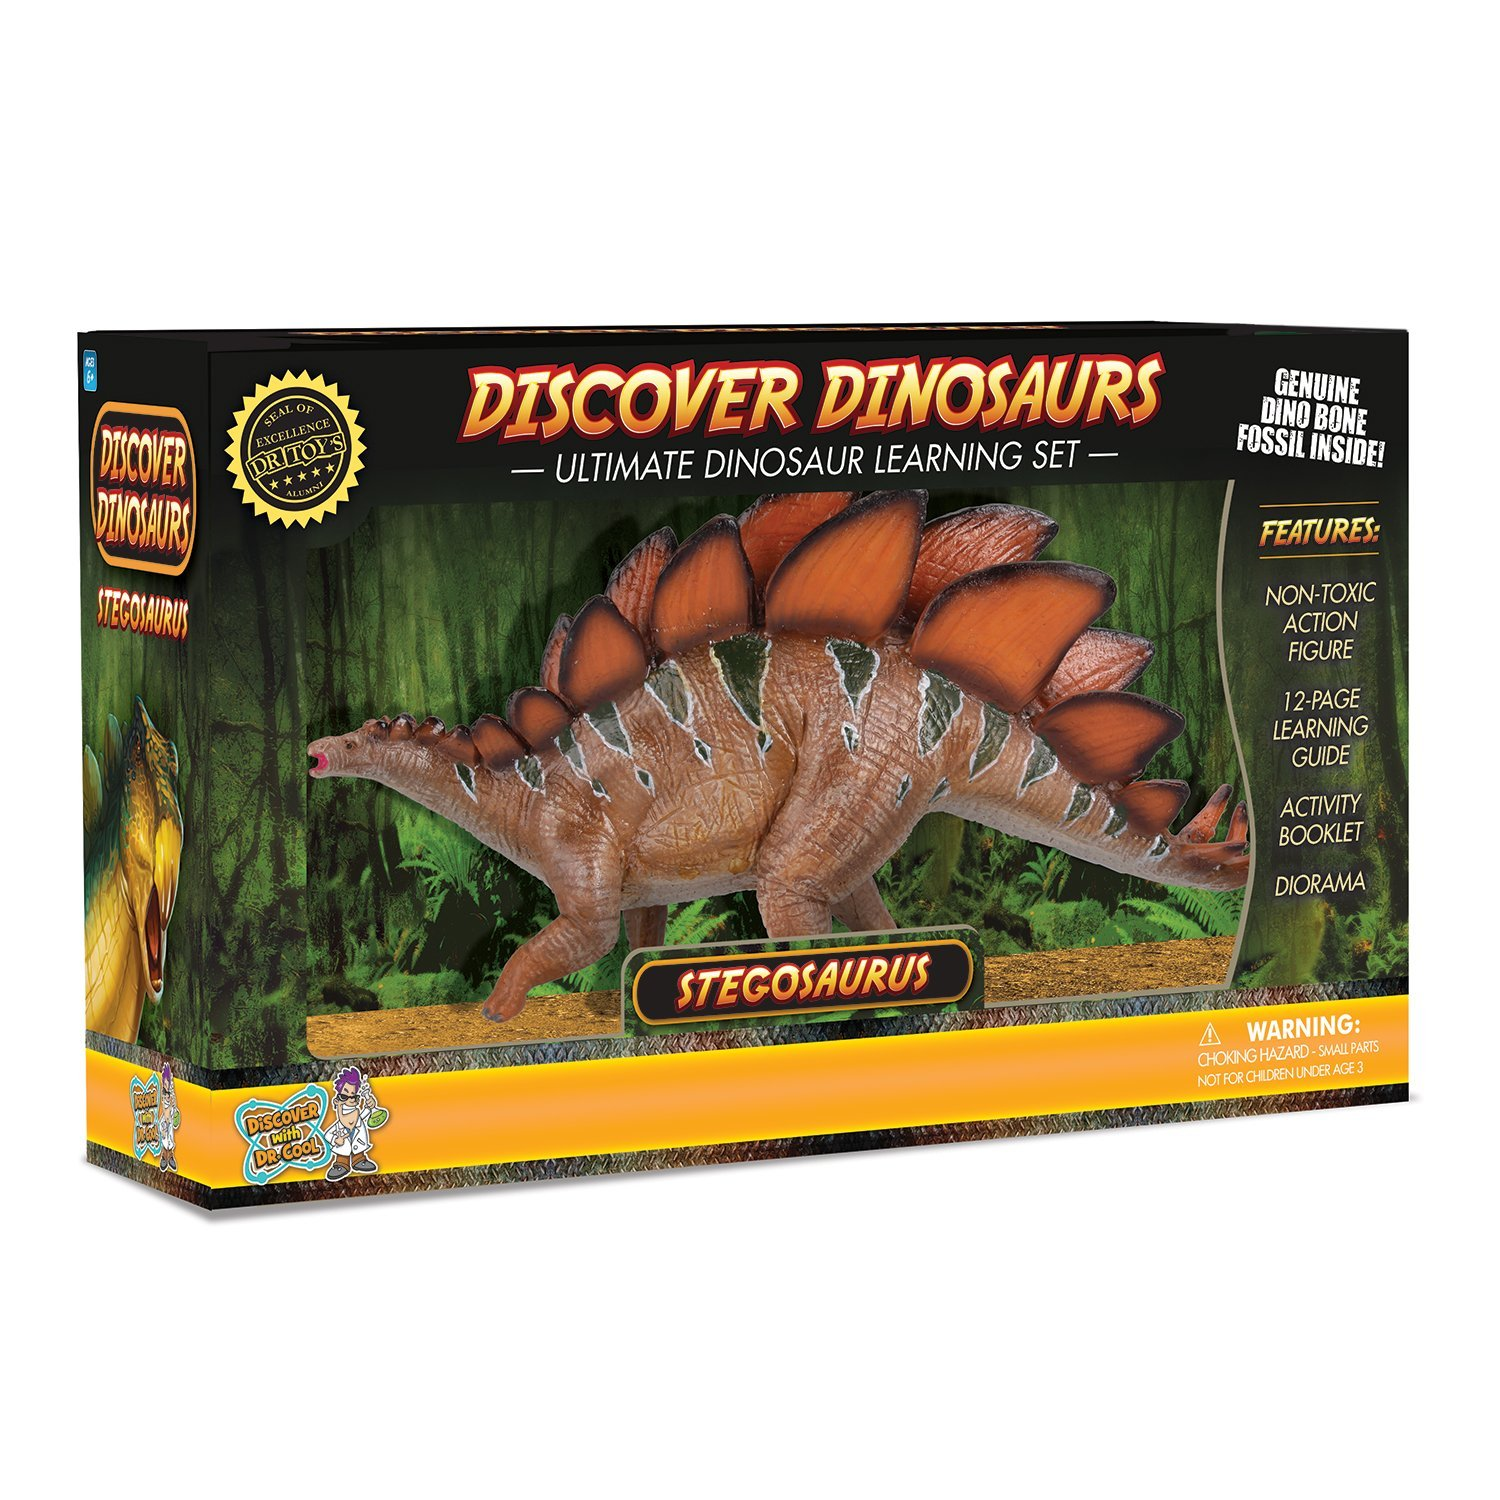 Stegosaurus Action Figure – Includes Real Dinosaur Bone F...